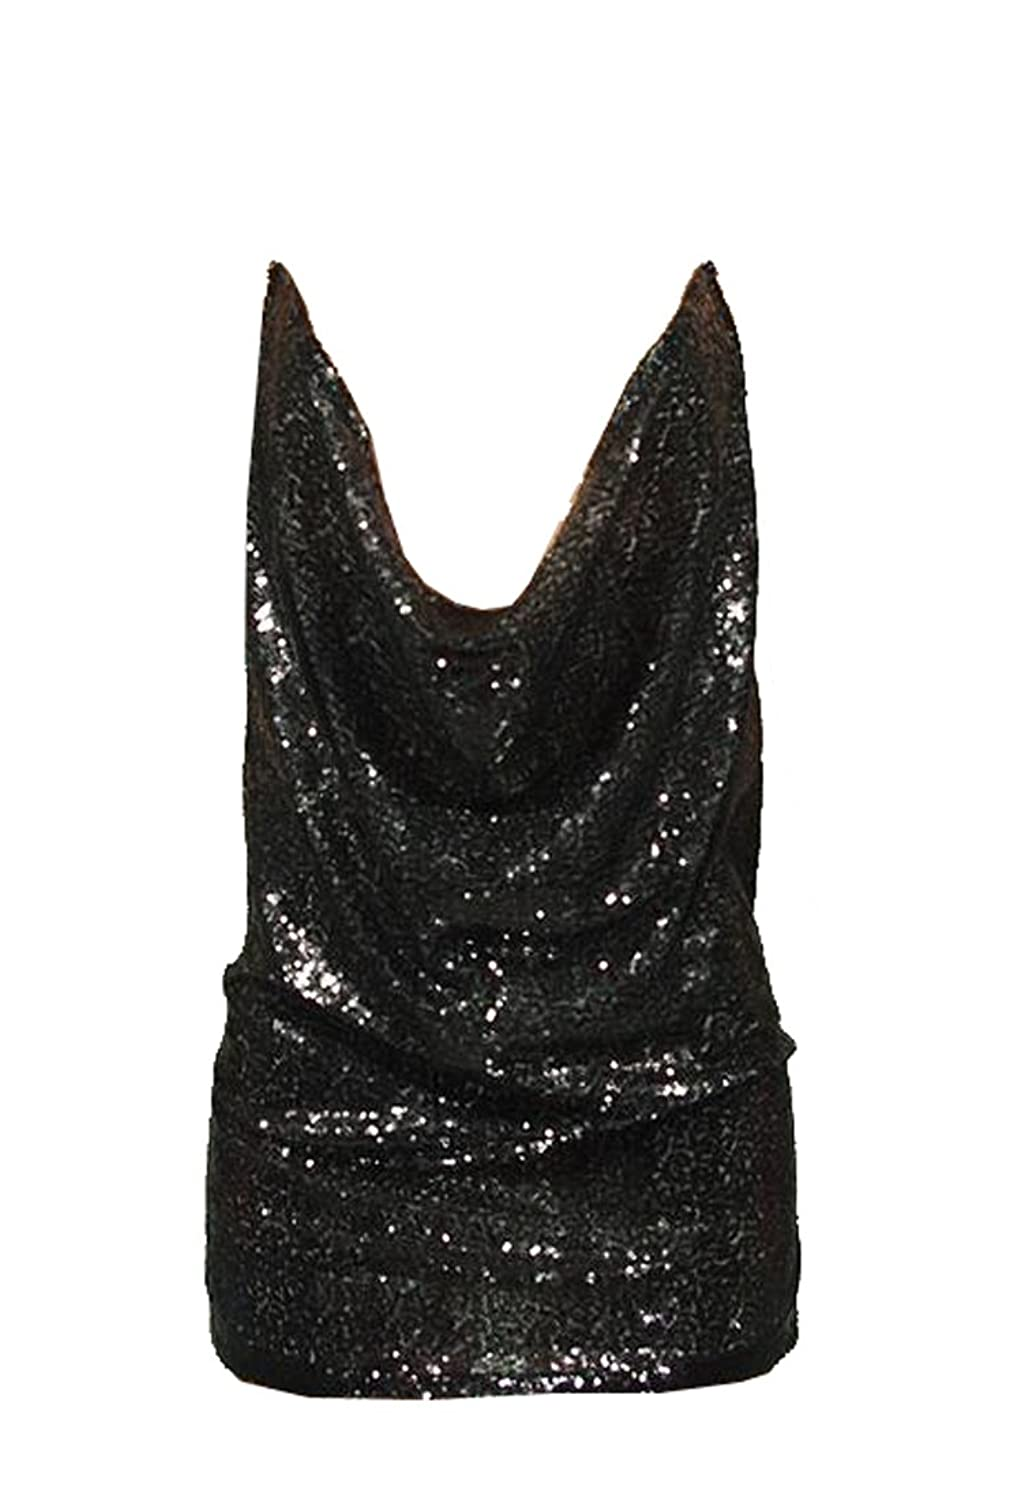 Unko Womens Sequins Bandage Cocktail Mini Party Clubwear Dress